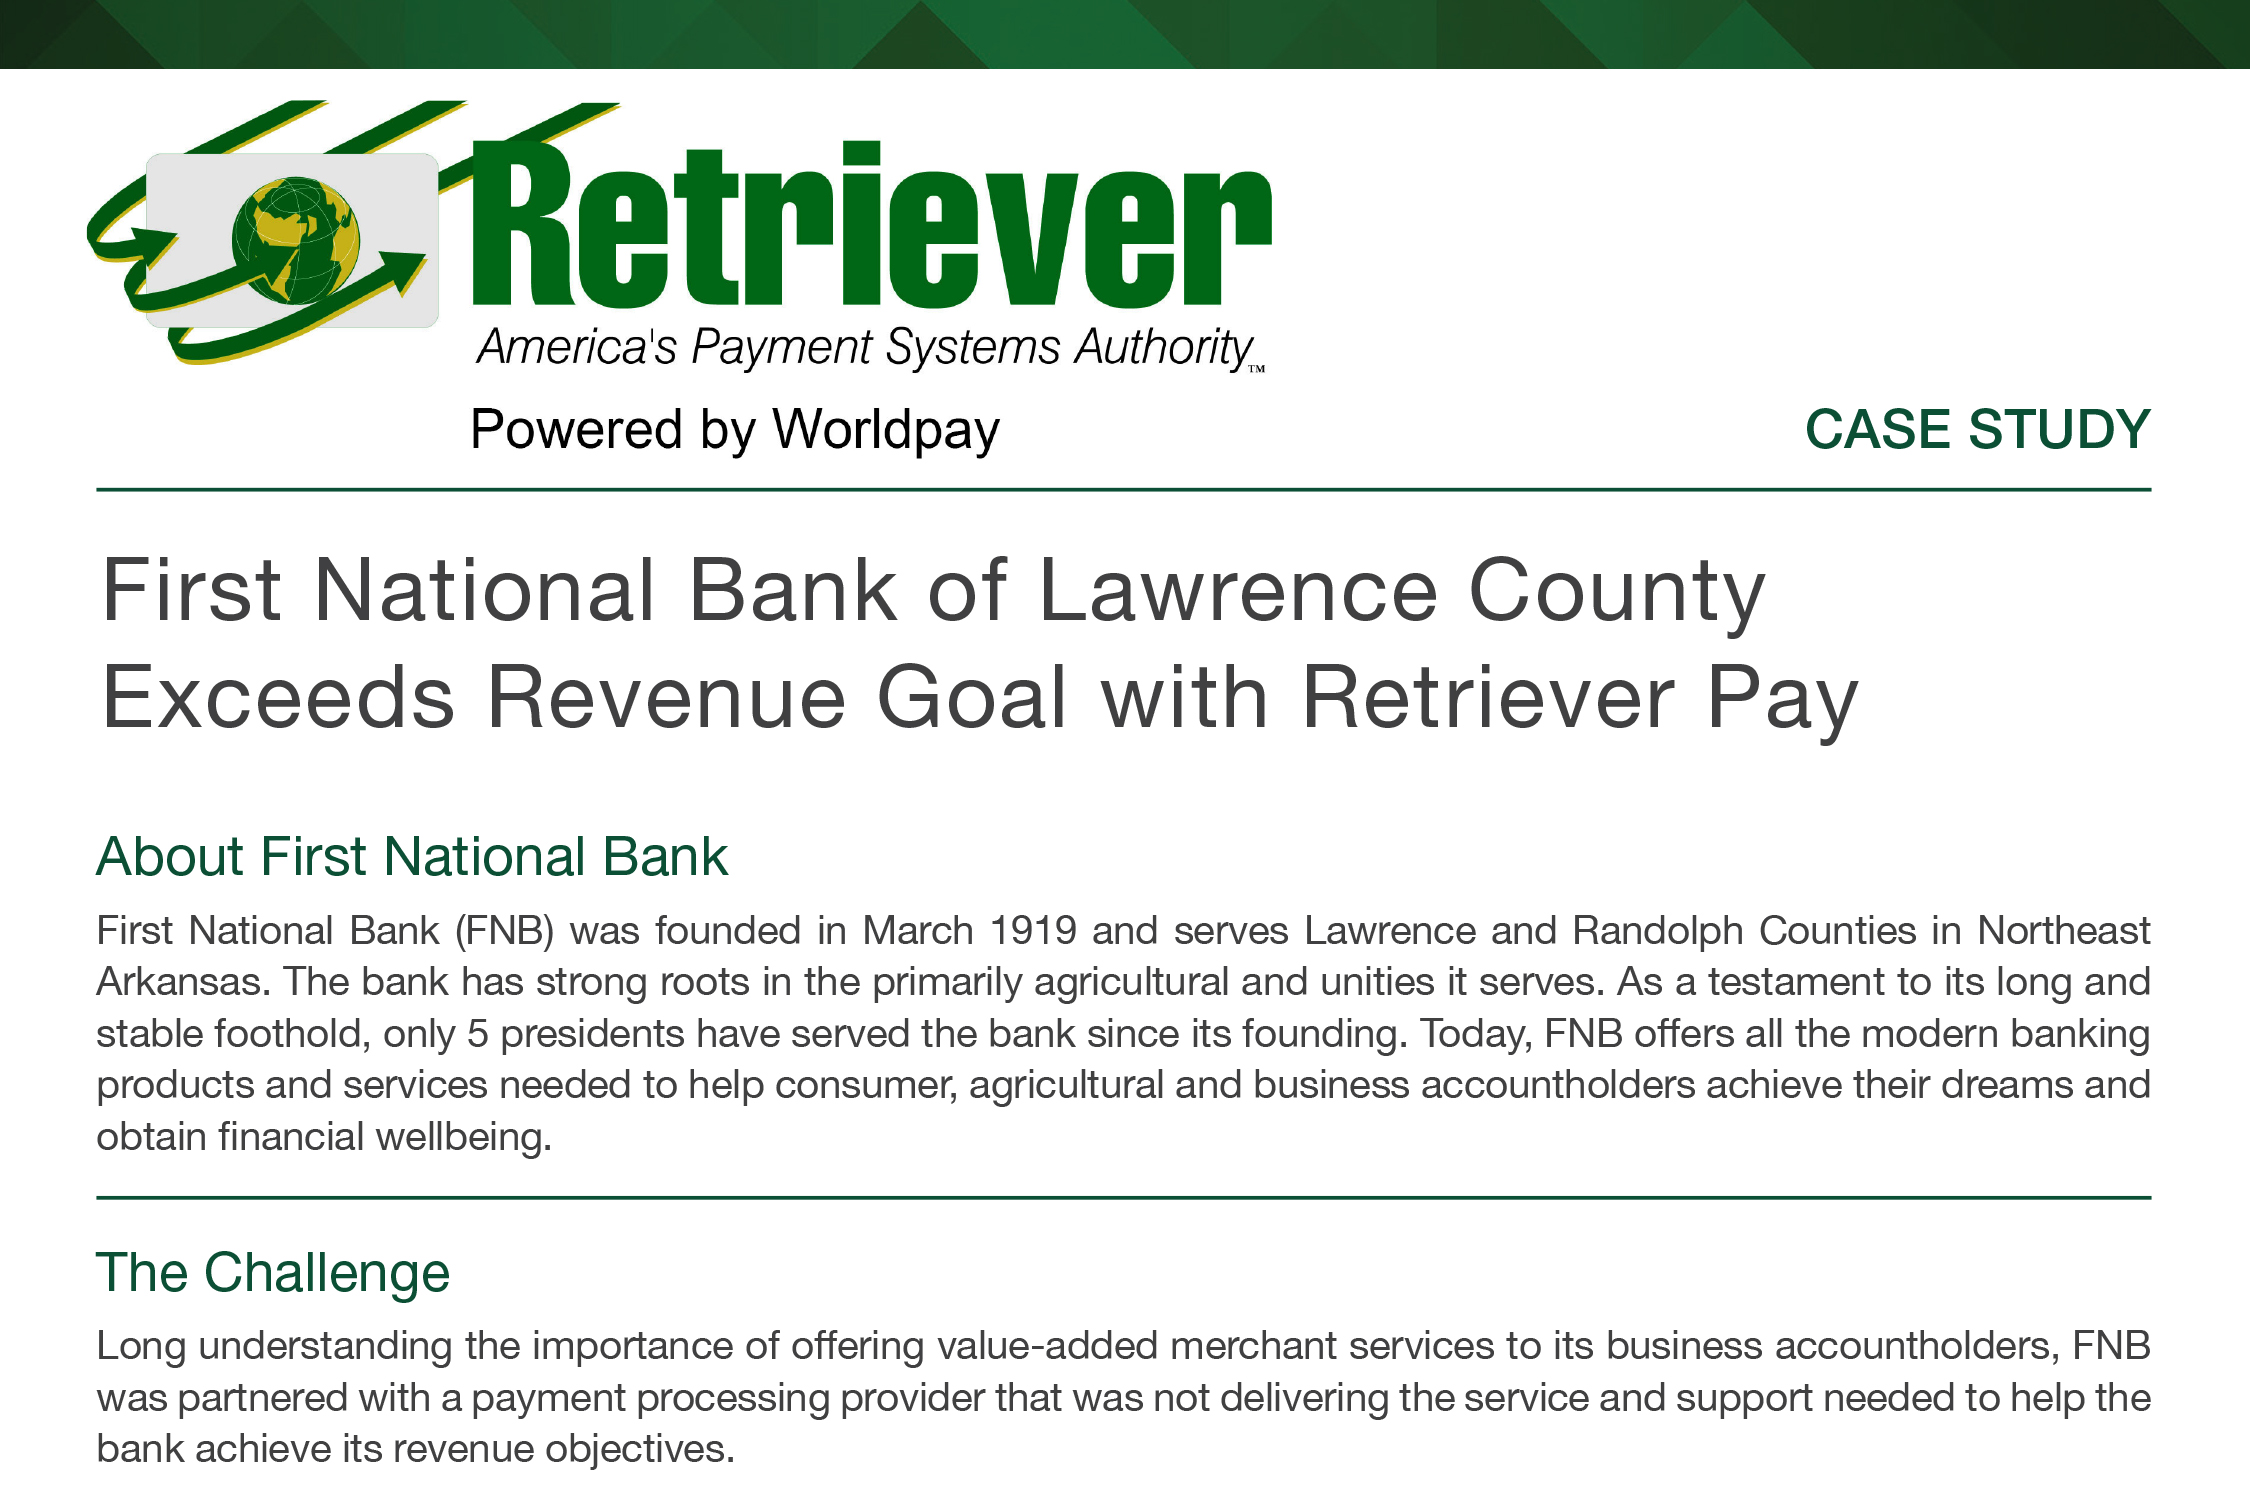 NationBankLawrence_CaseStudy